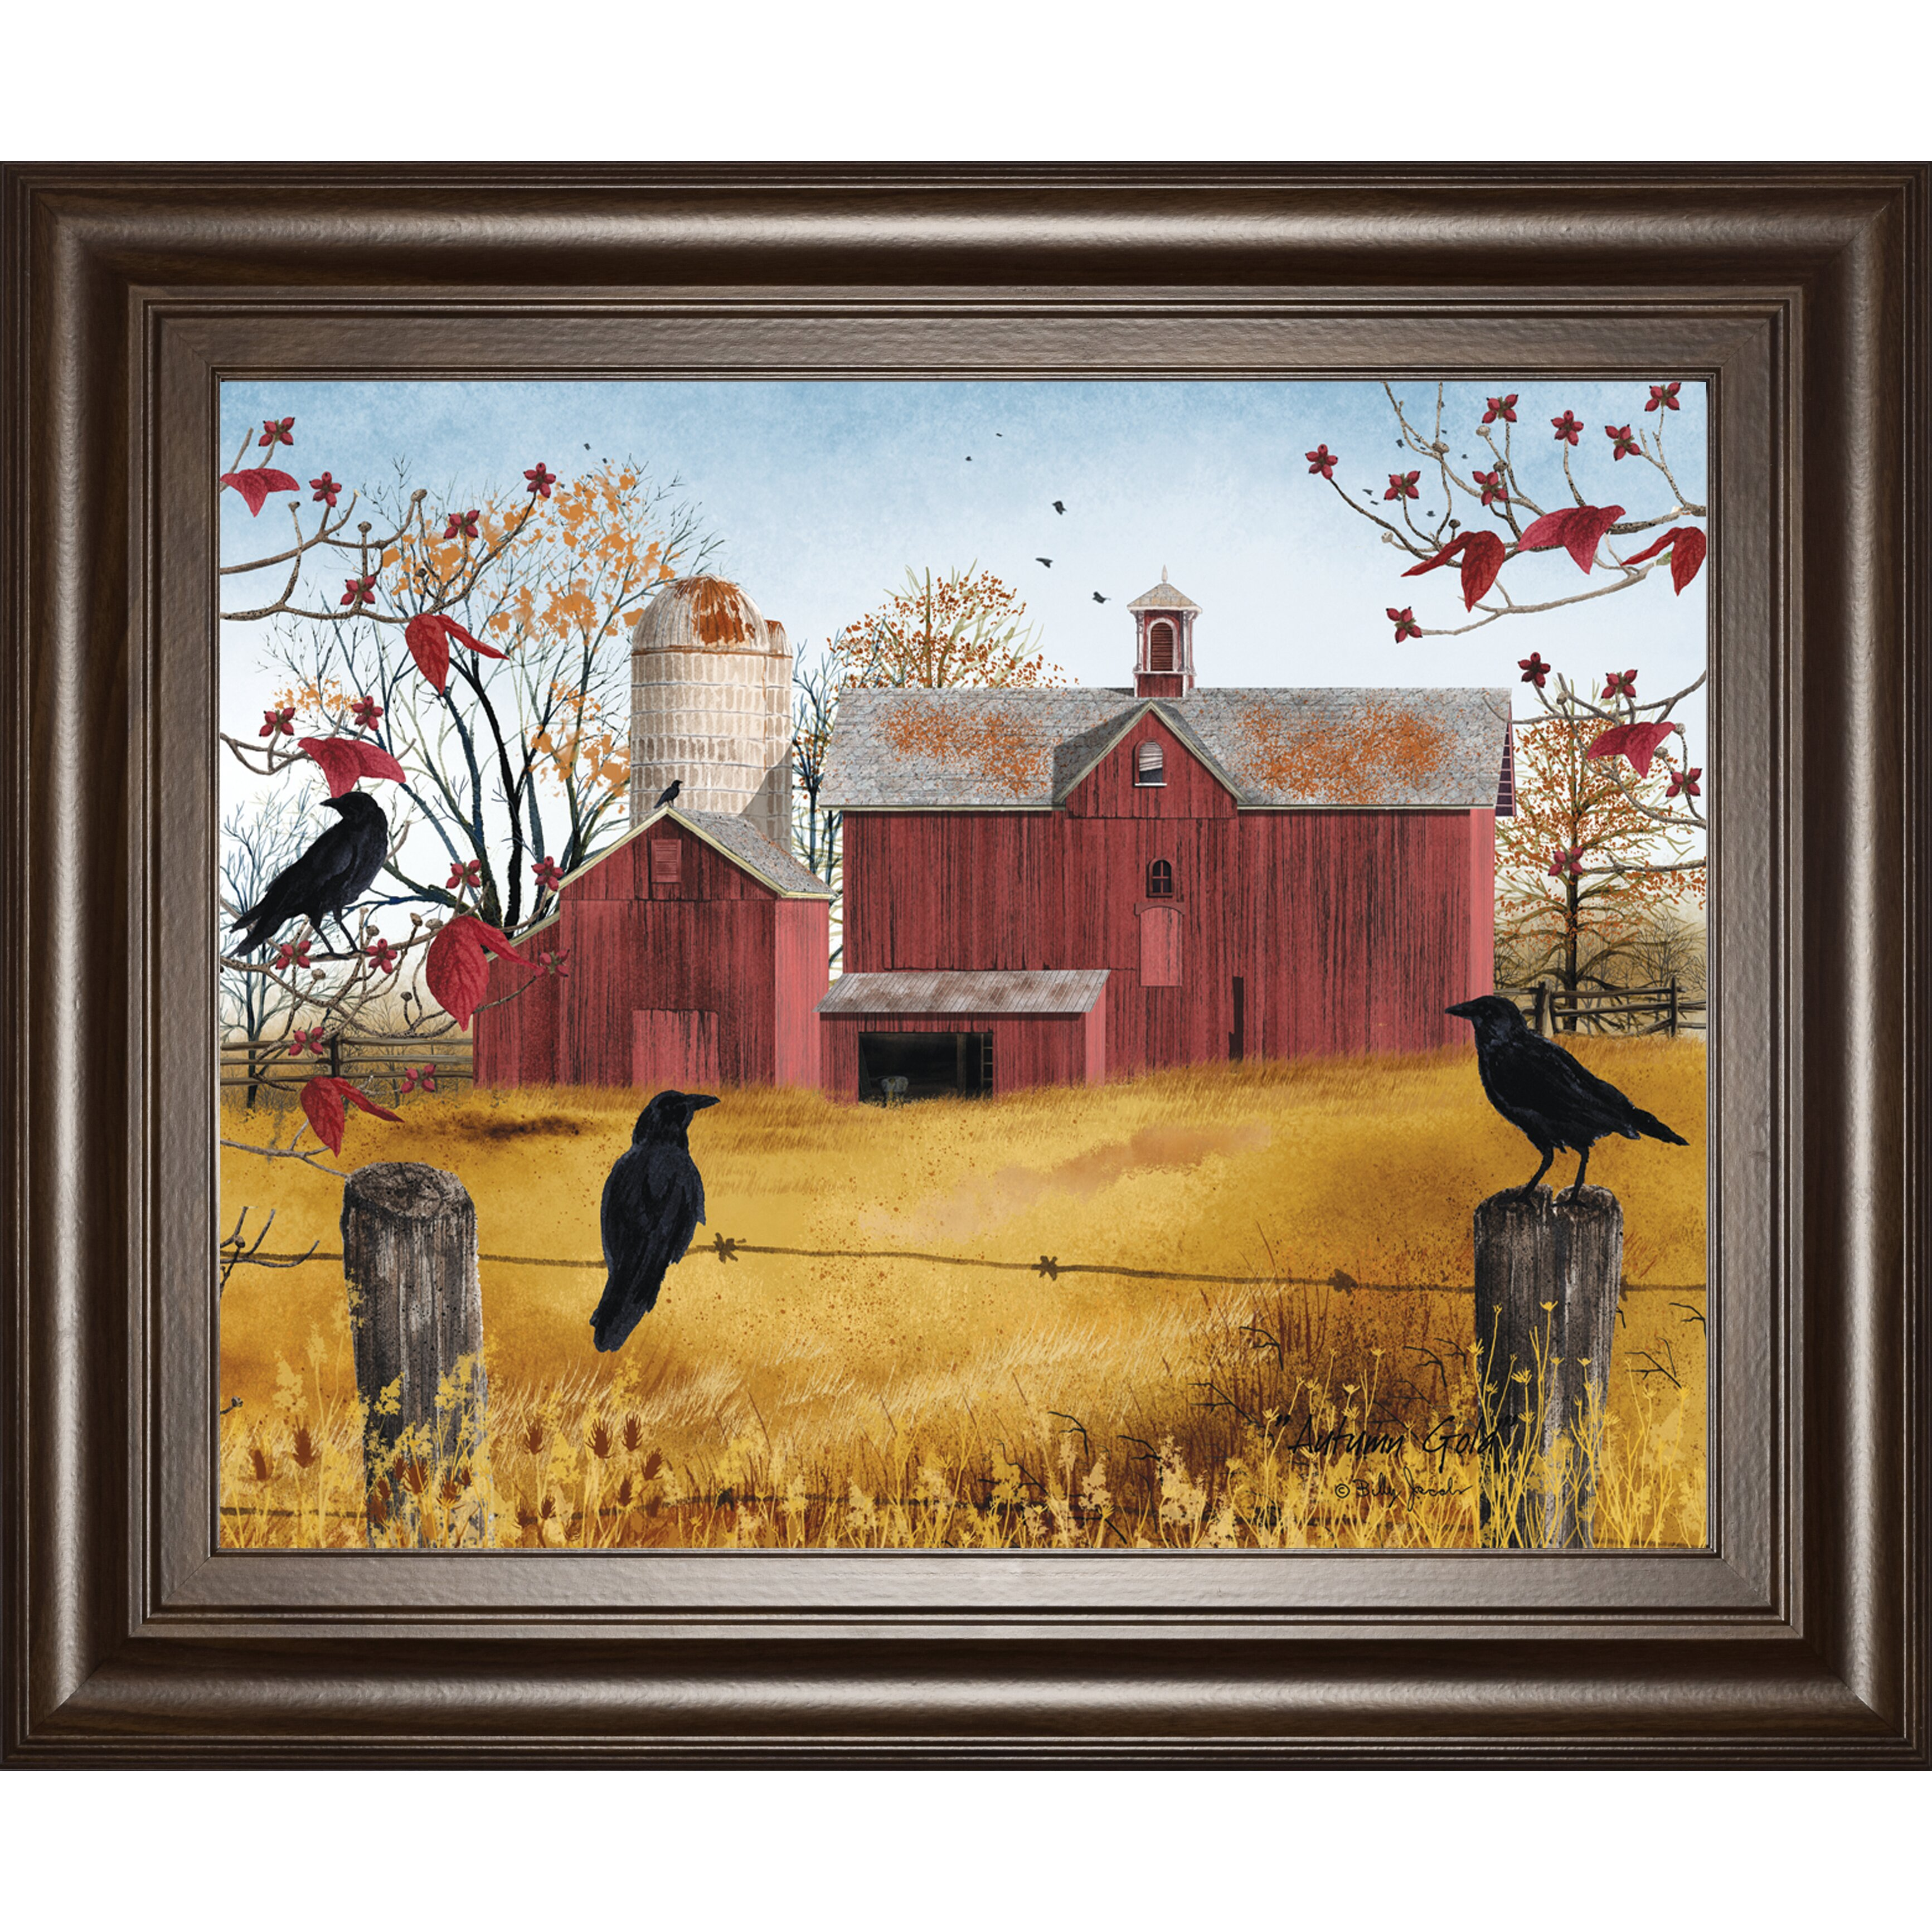 Classyartwholesalers Autumn Gold By Billy Jacobs Framed